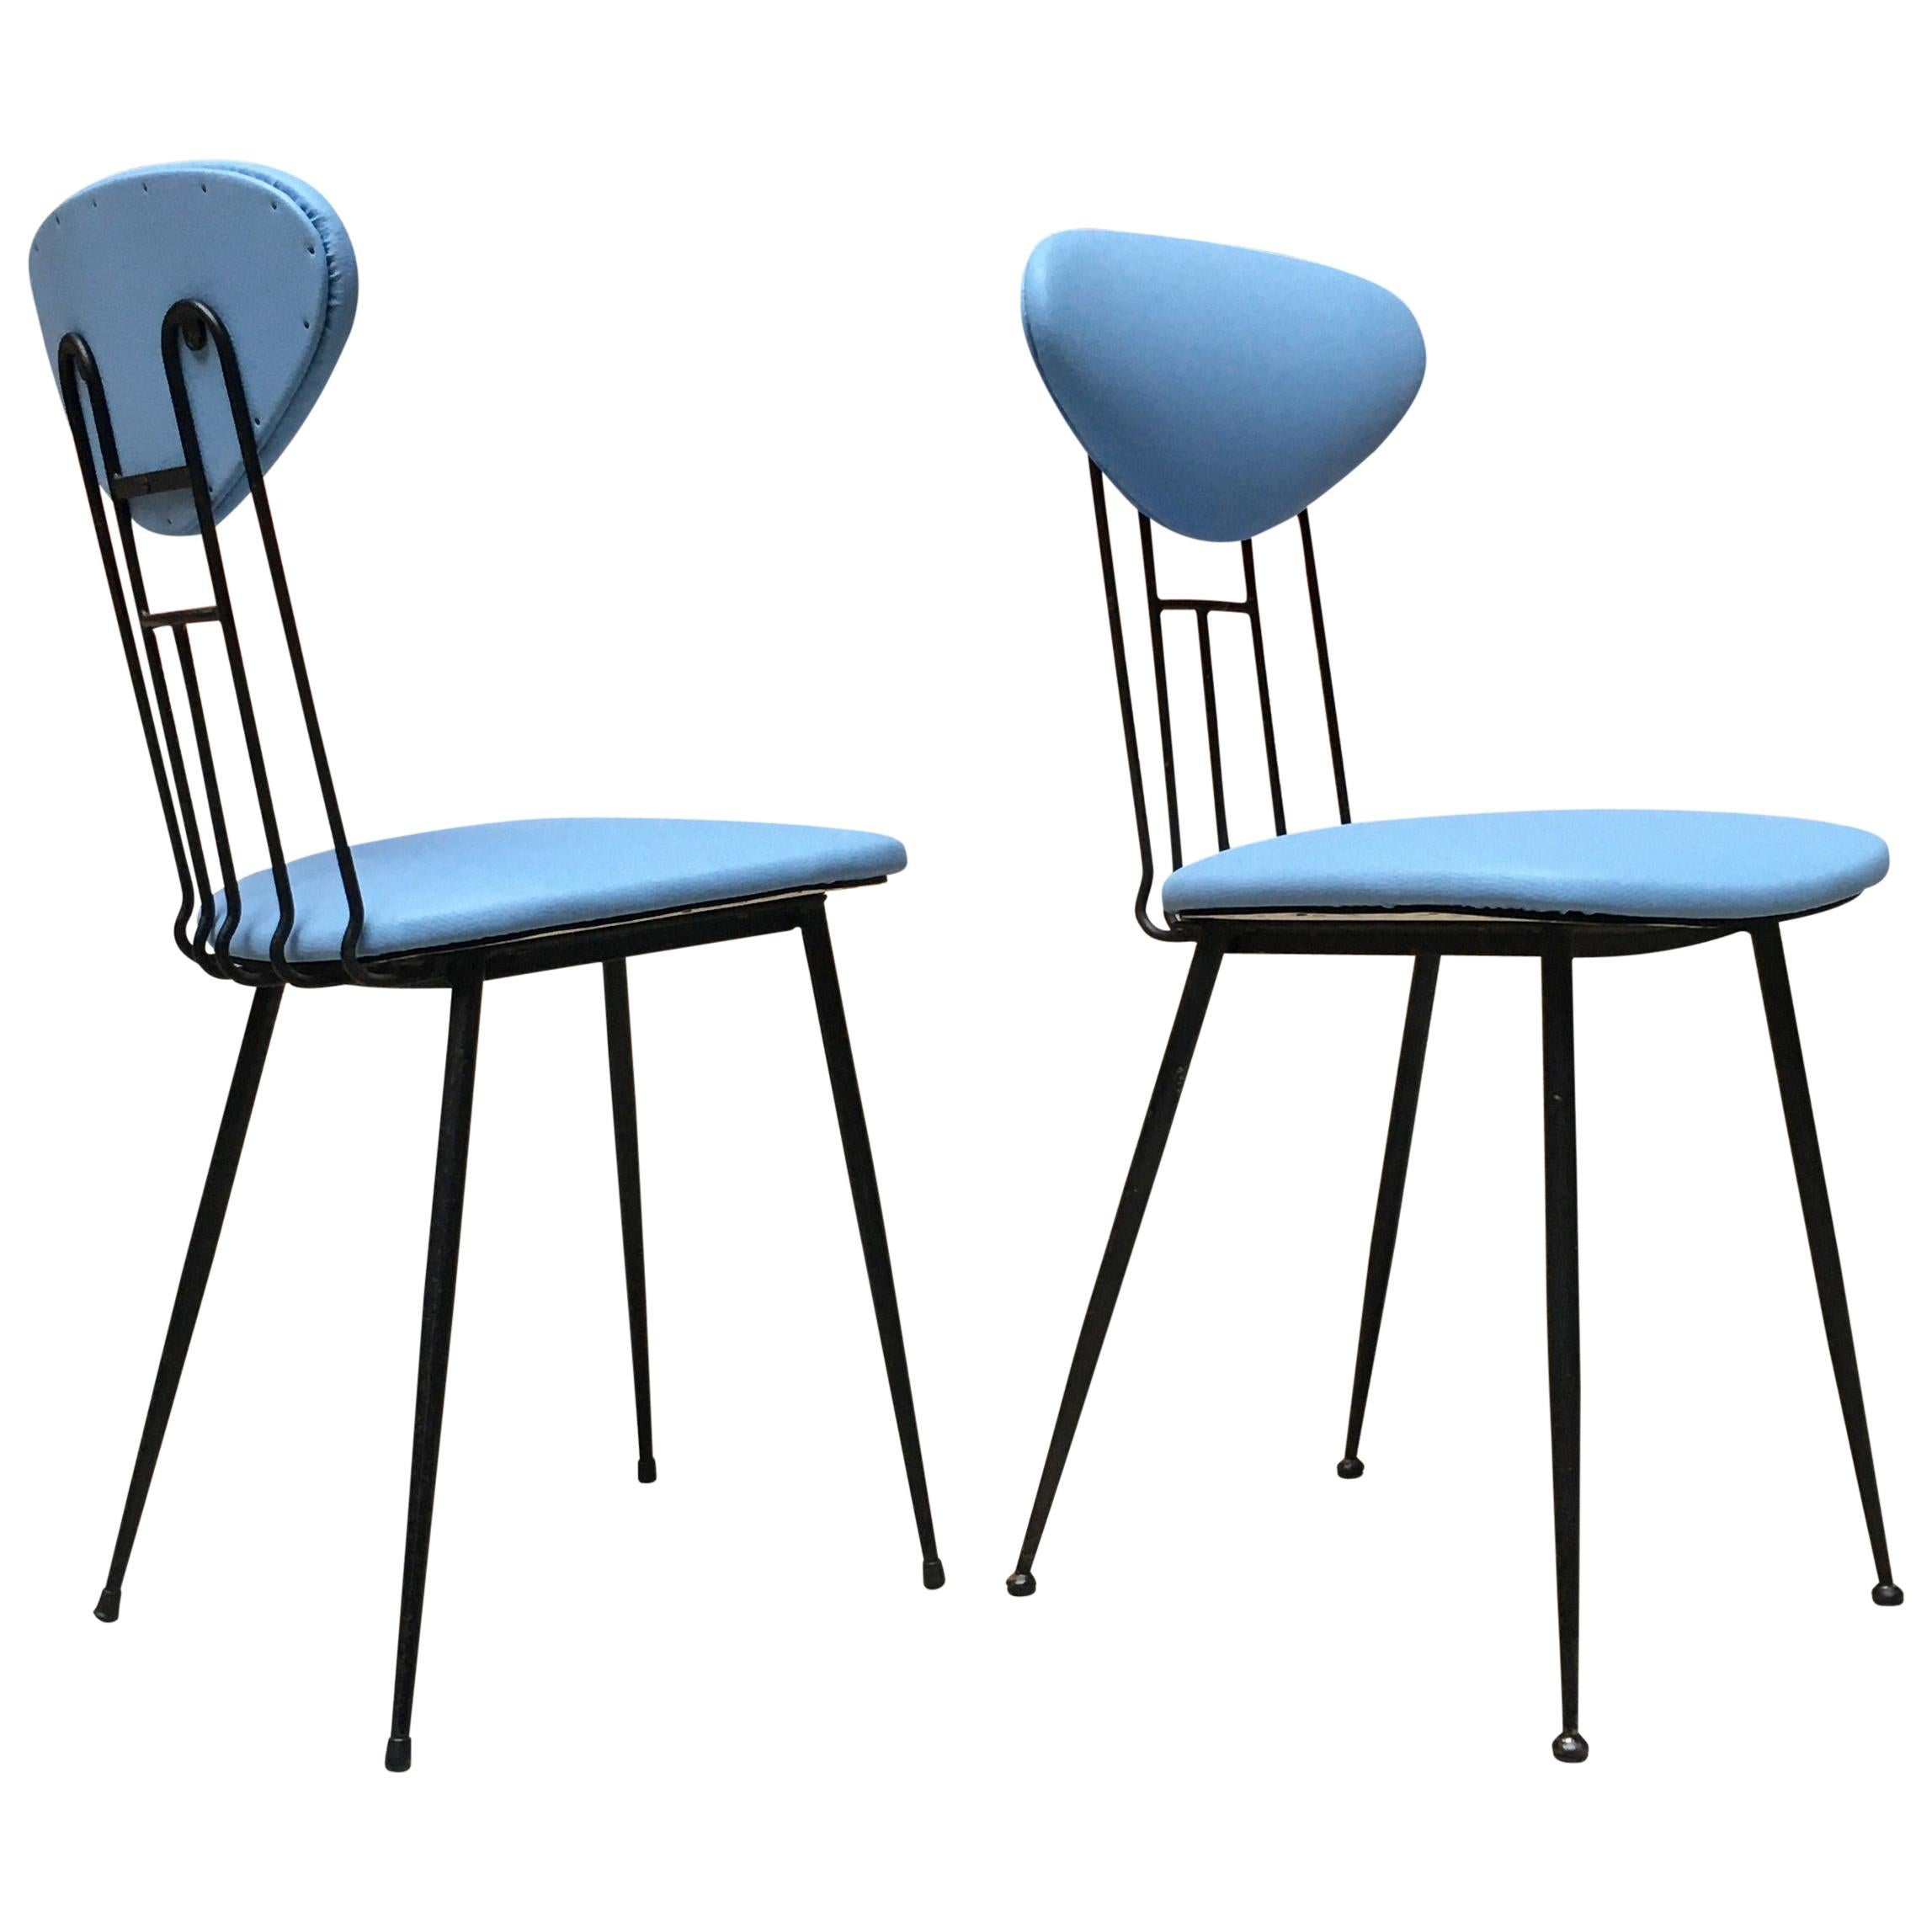 Italian Light-Blue Leatherette and Black Metal Chairs, 1980s